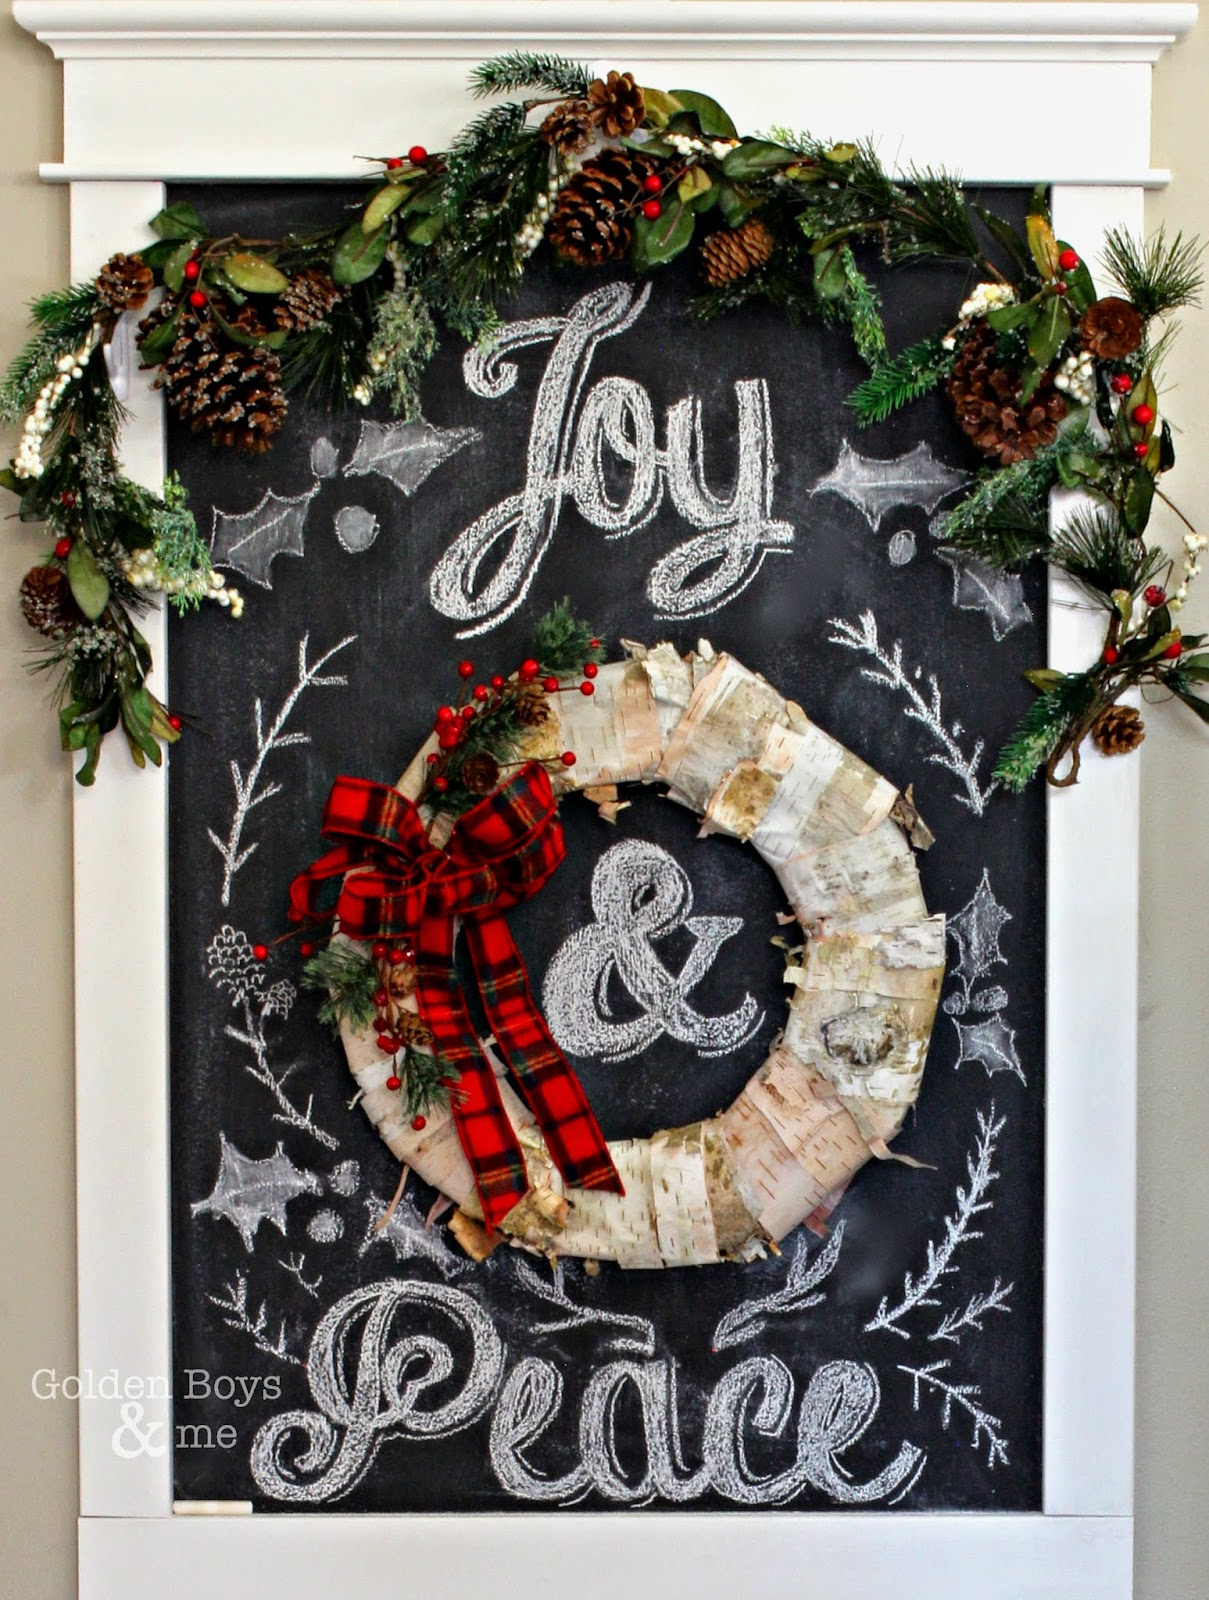 Joy and Peace chalk art with birch bark wreath in Christmas entryway-www.goldenboysandme.com